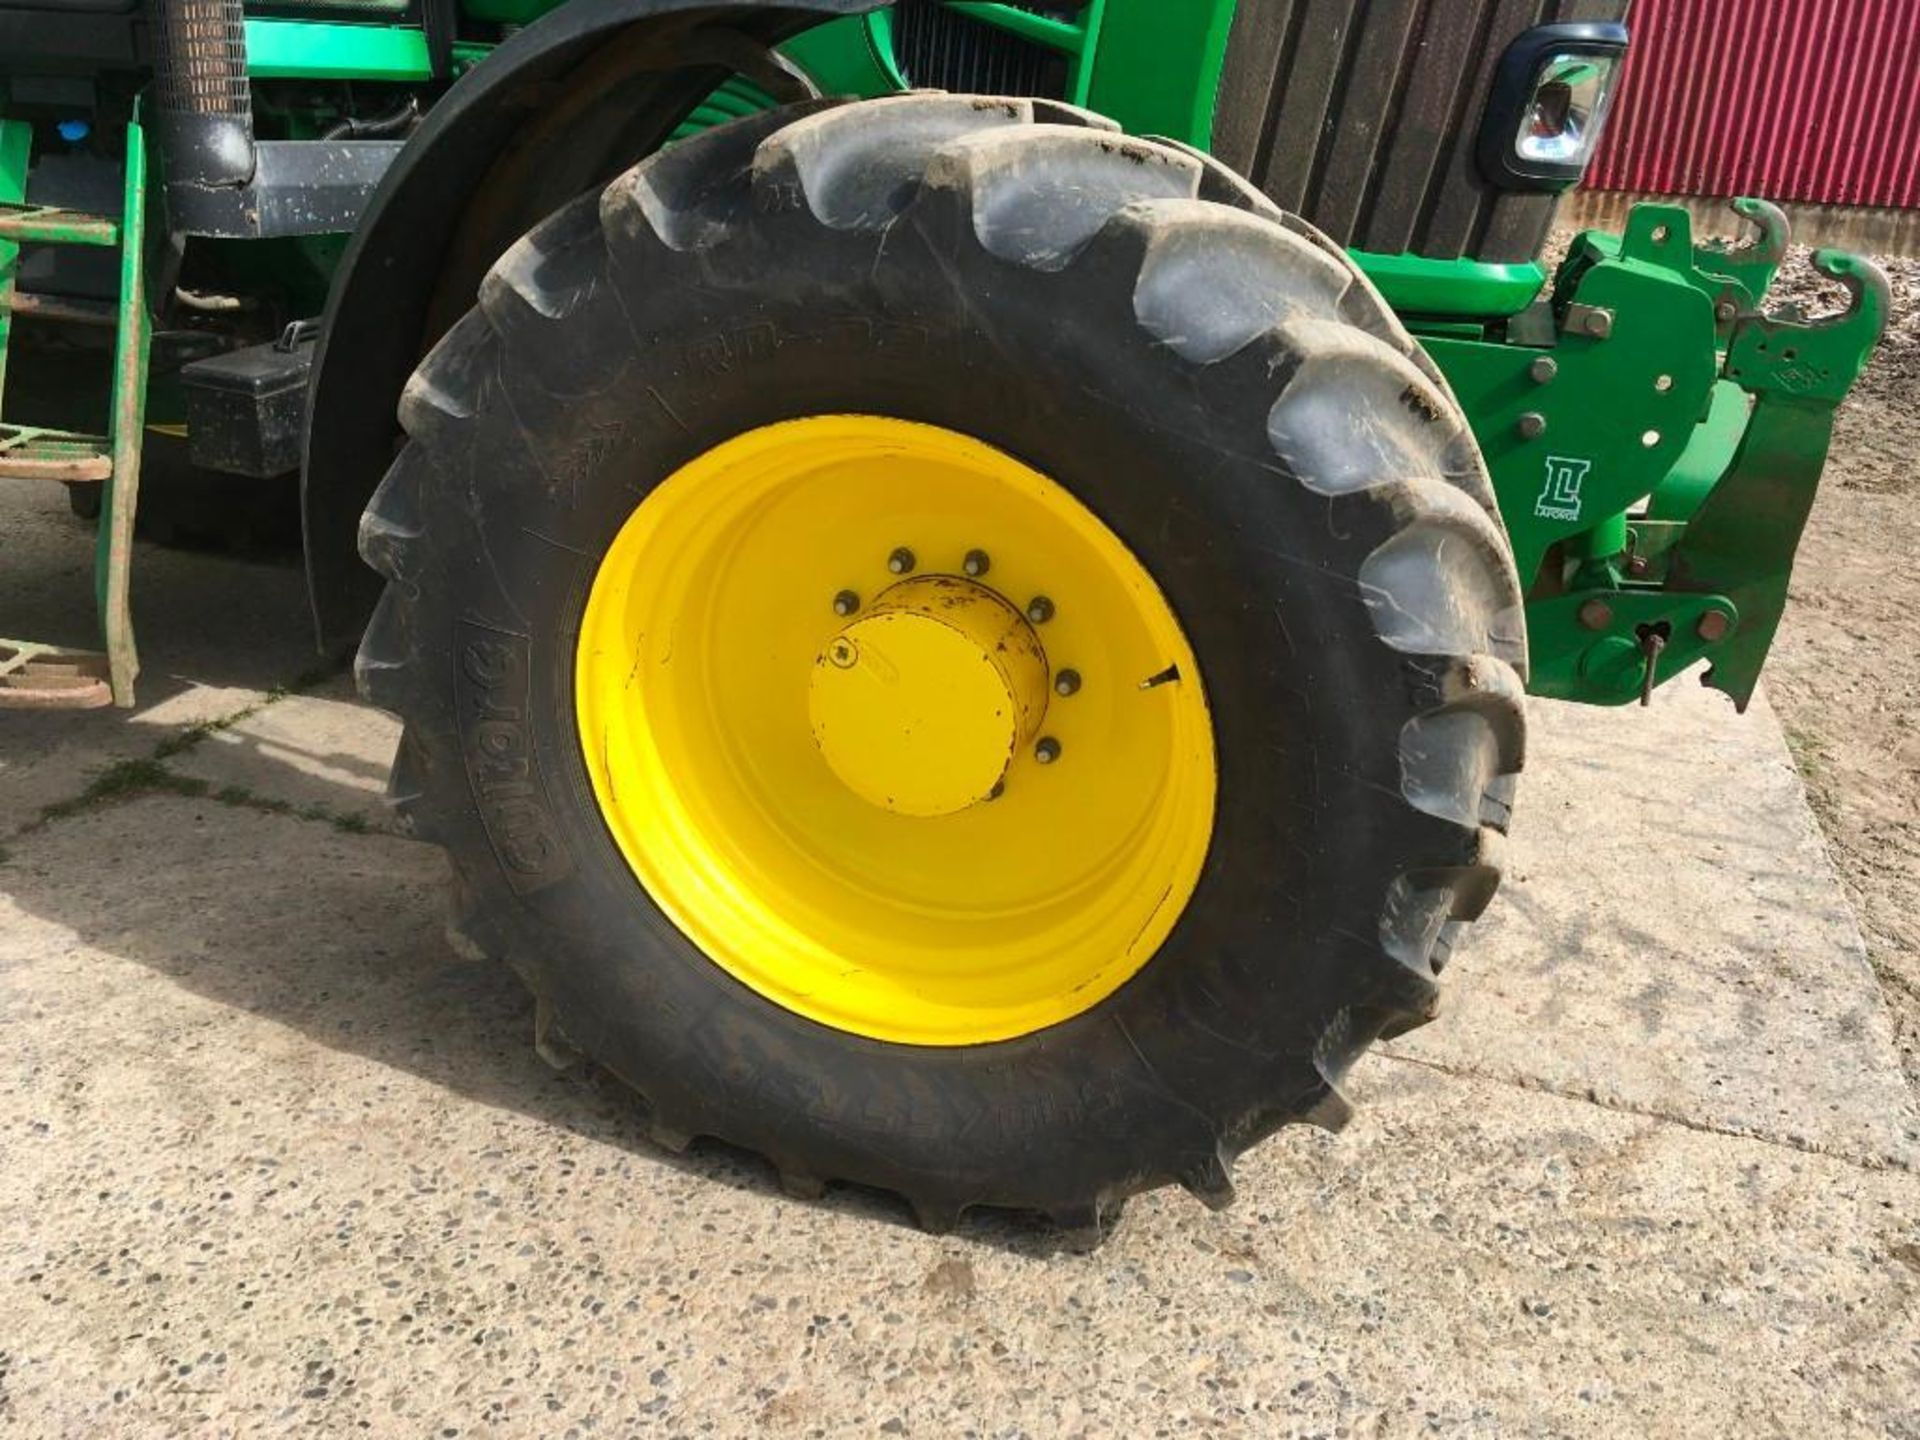 2008 John Deere 7530 tractor with auto quad gear box, 4 spool valves, pick up hitch, air seat, front - Image 7 of 14